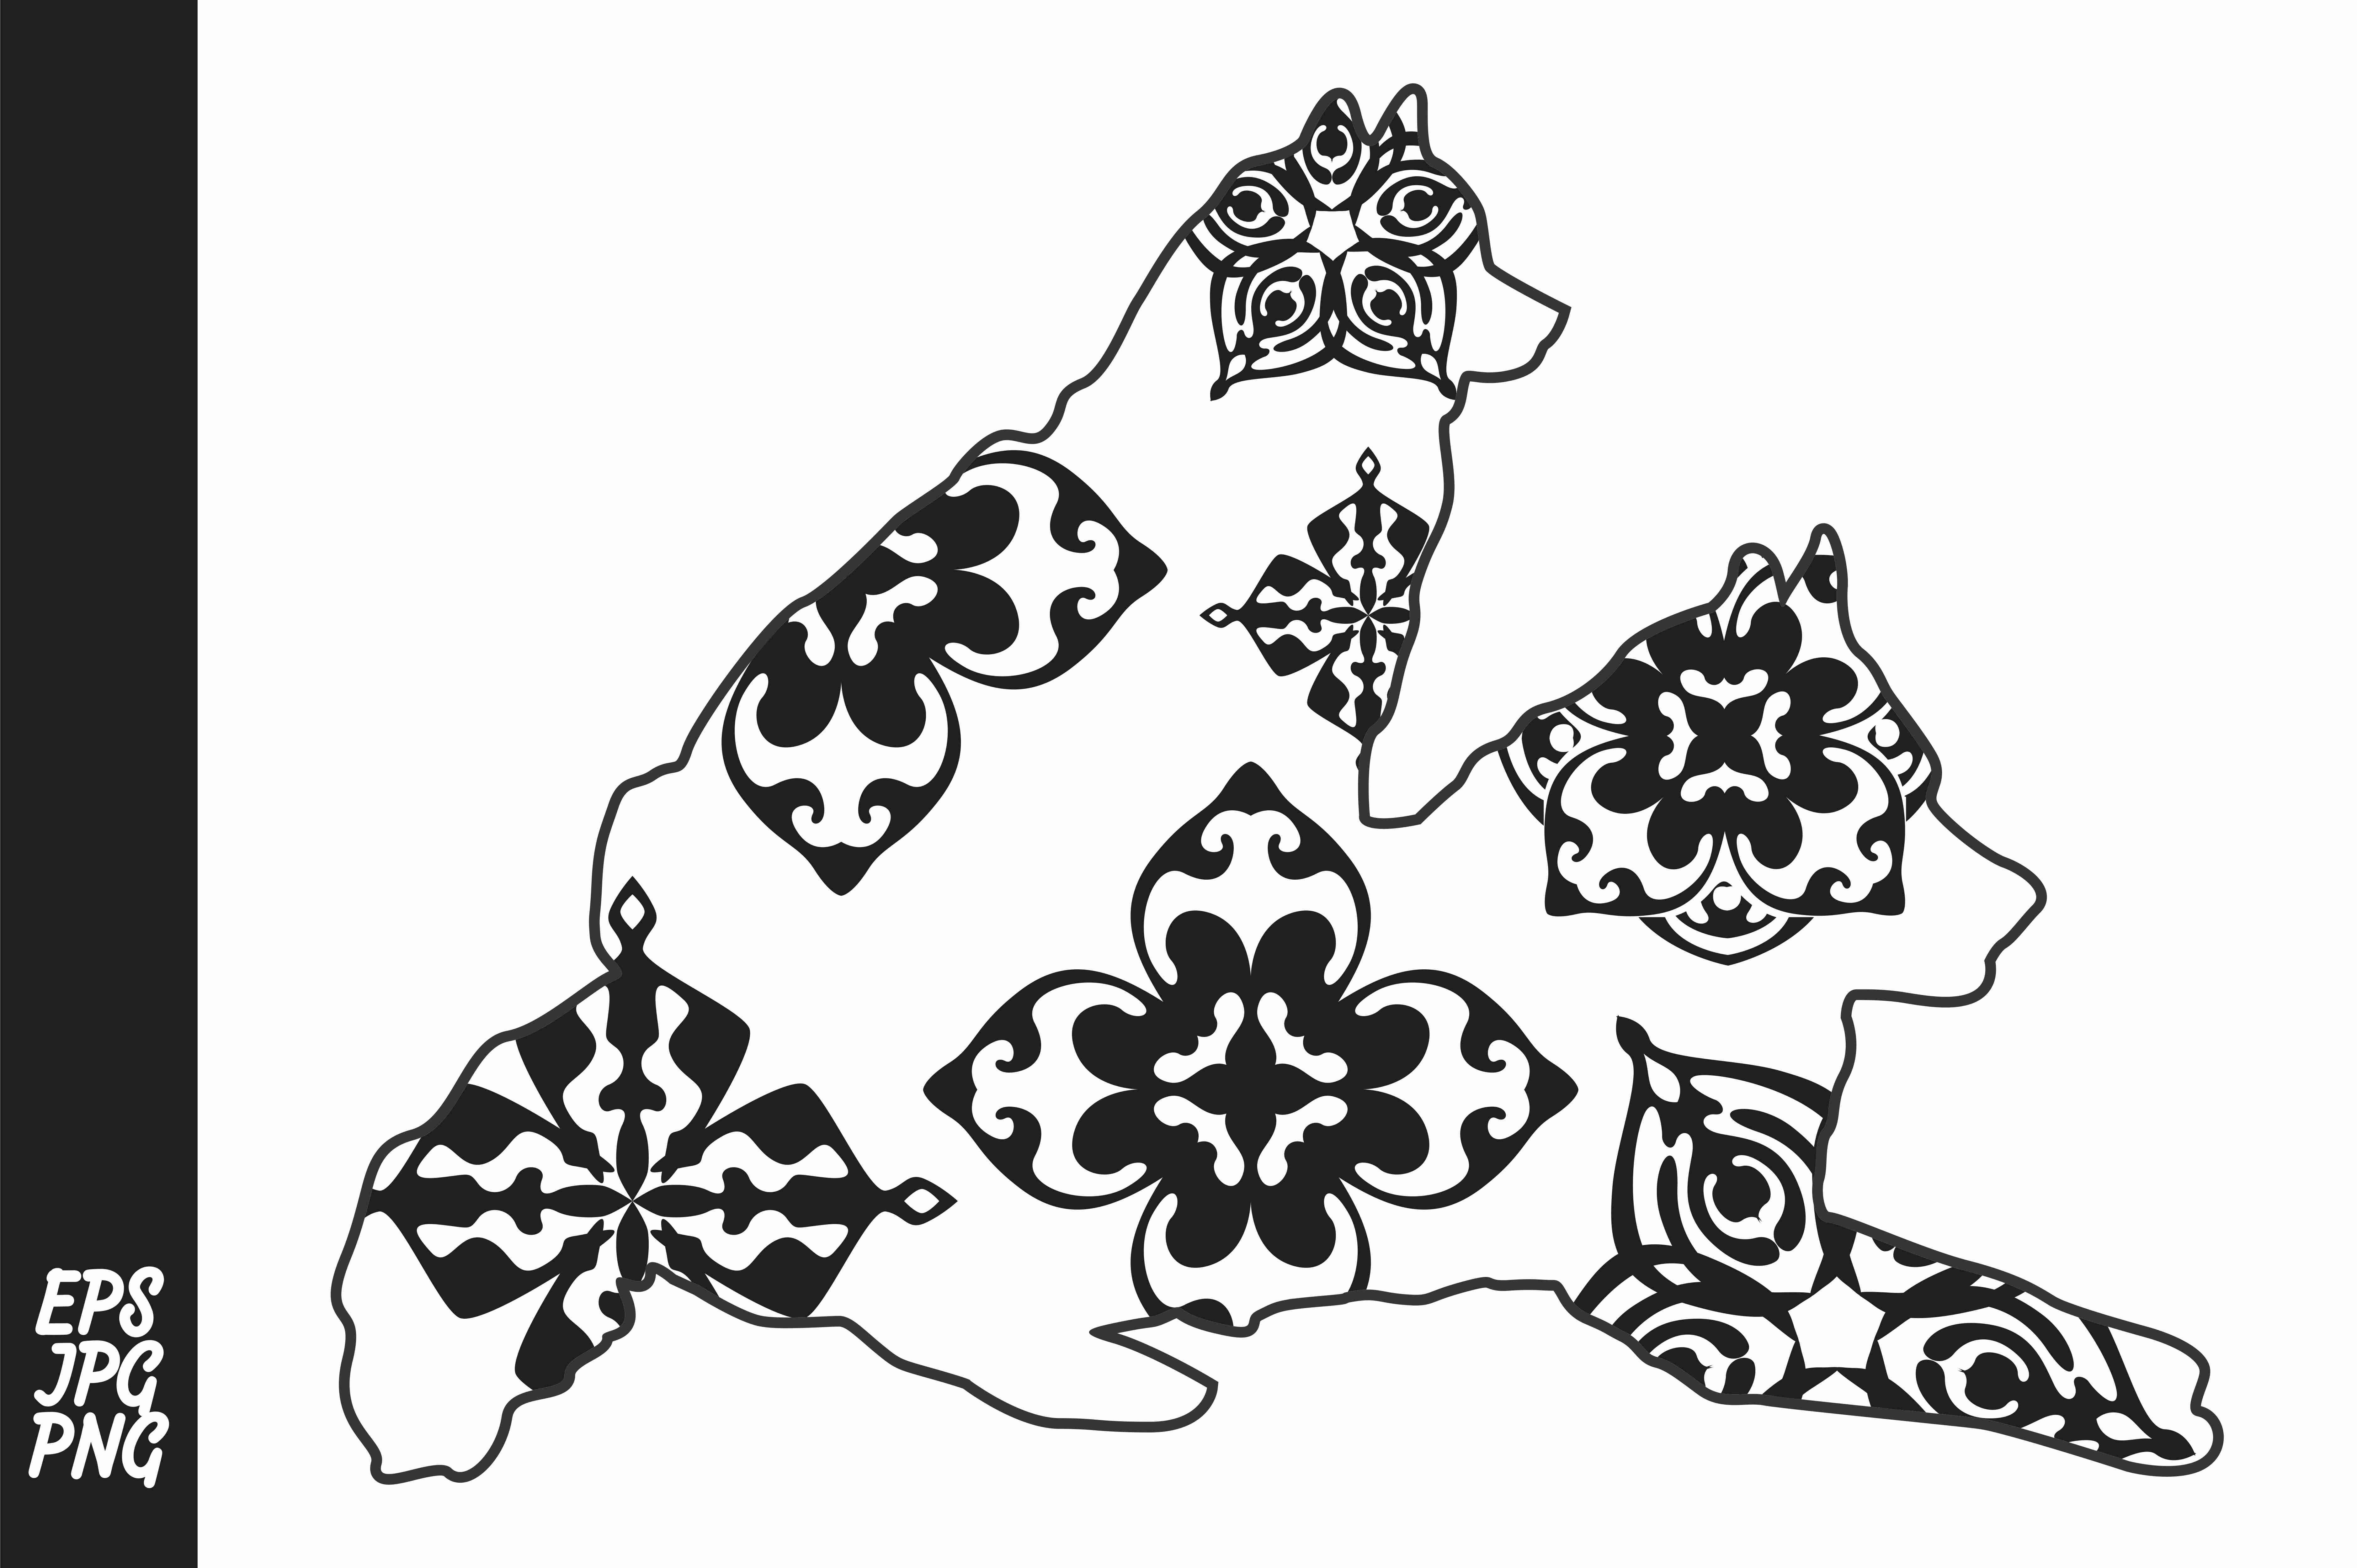 Download Free 52250 Graphic Crafts 2020 Page 690 Of 1471 Creative Fabrica for Cricut Explore, Silhouette and other cutting machines.